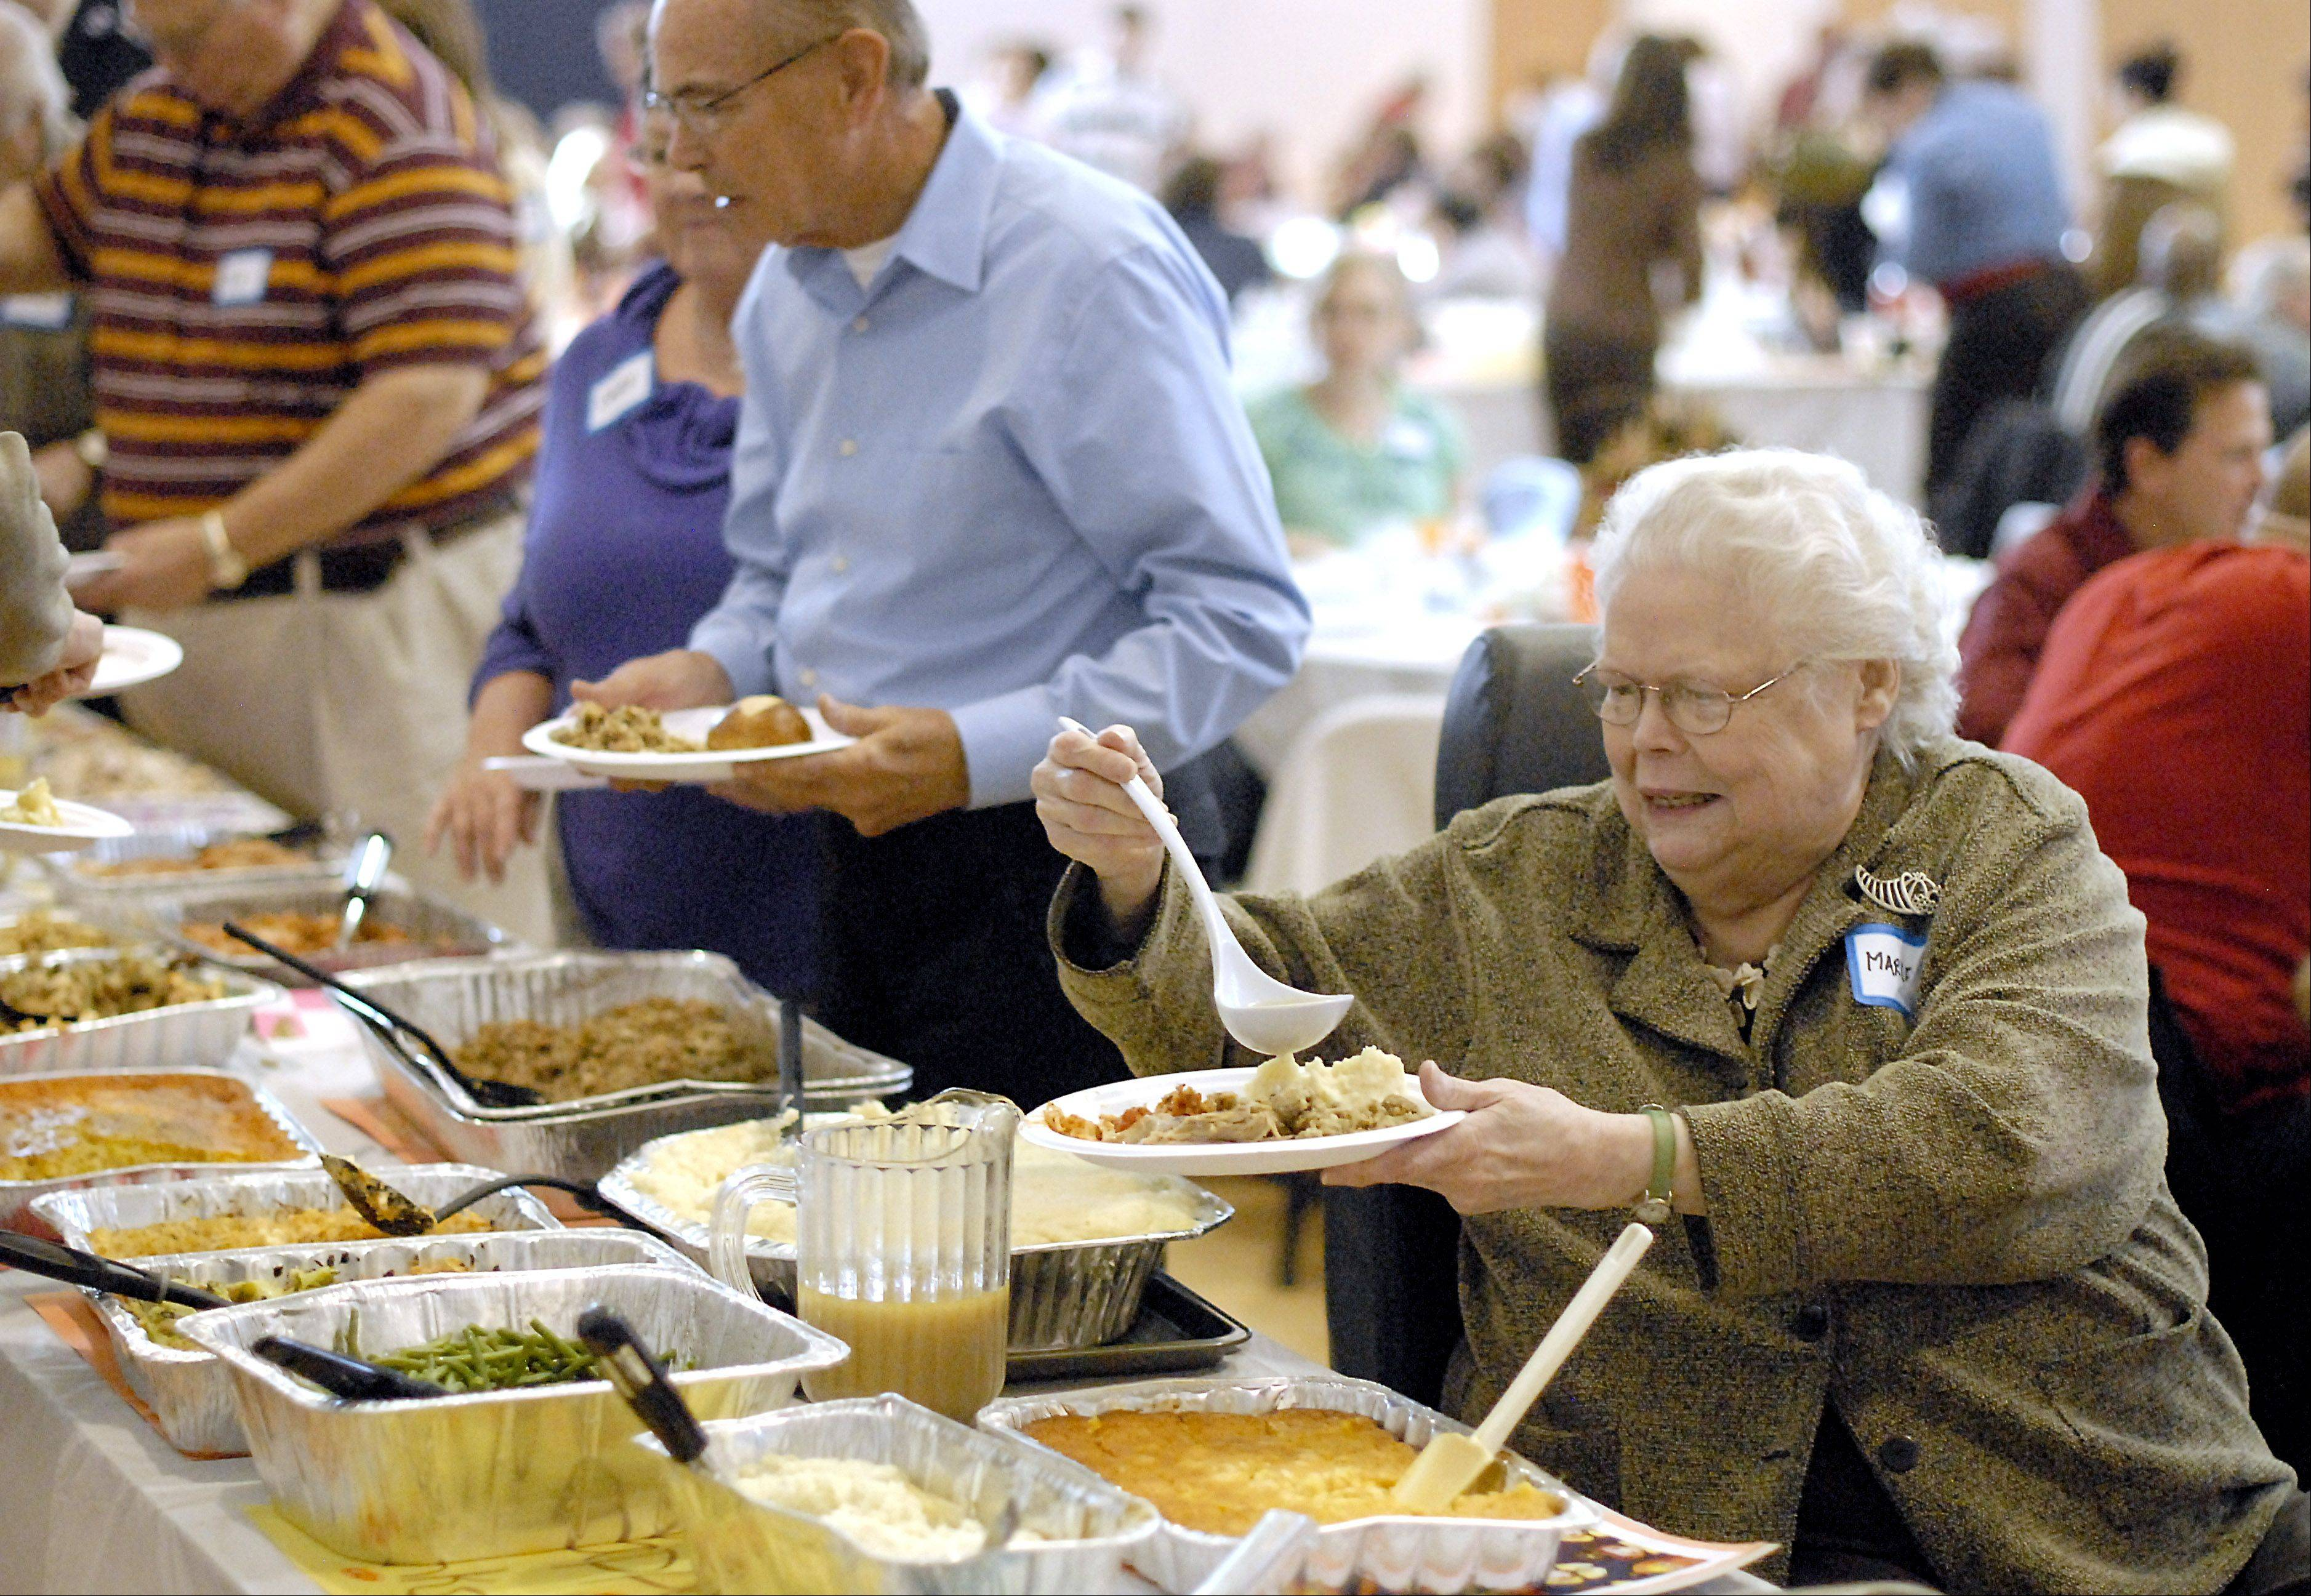 Marlene Thanepohn, of St. Charles, attended the Lazarus House's annual Thanksgiving feast for the first time Thursday after spending the previous four holidays alone.